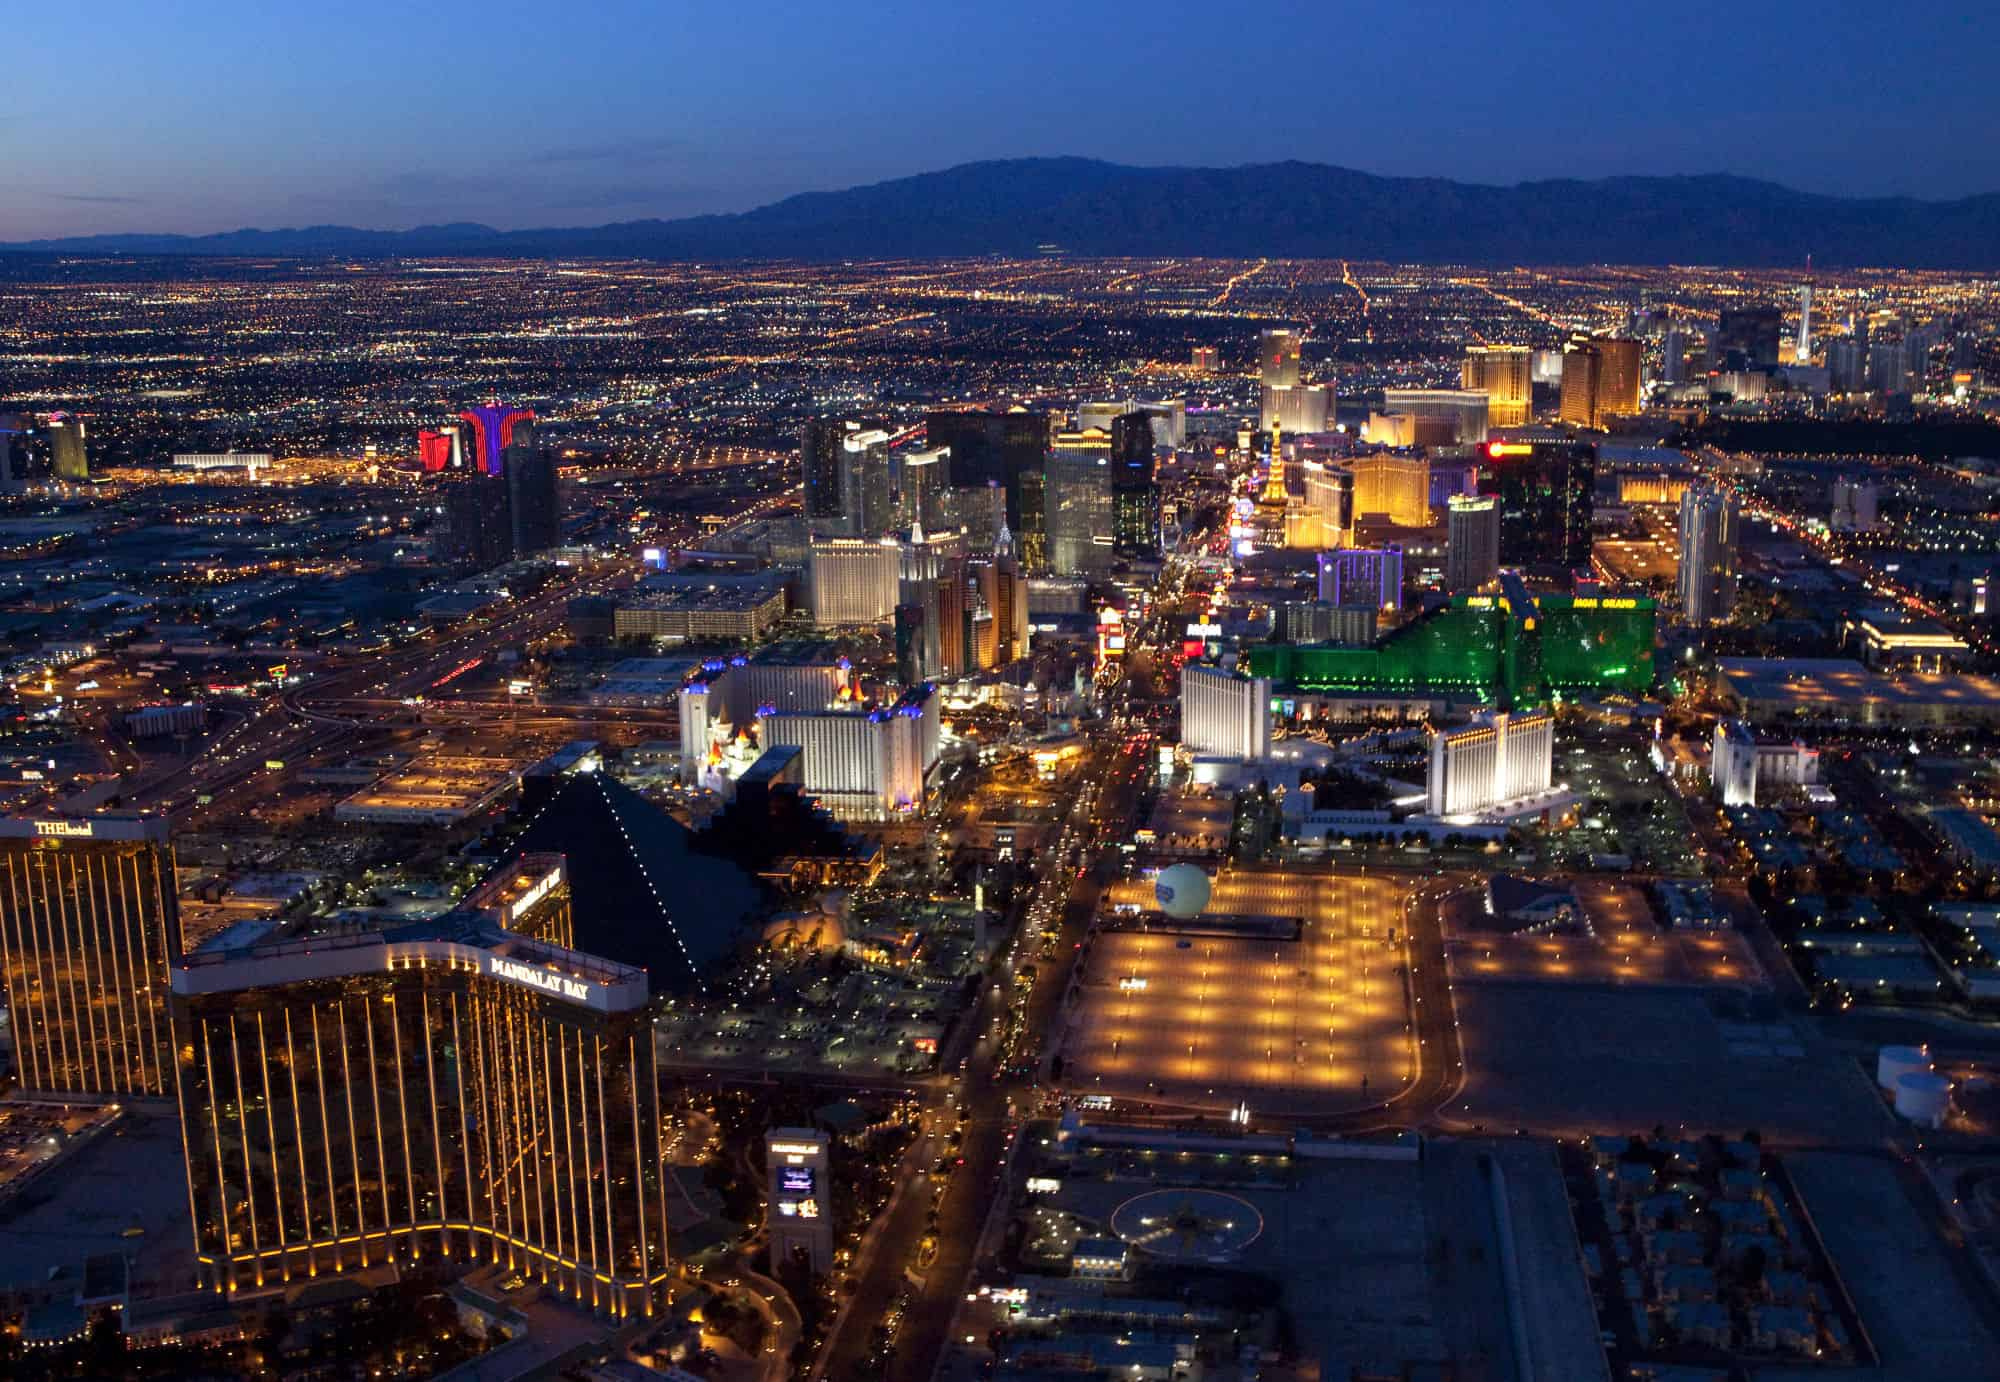 Las Vegas Strip aerials from a helicopter Photo by Brian Jones 2/25/10.